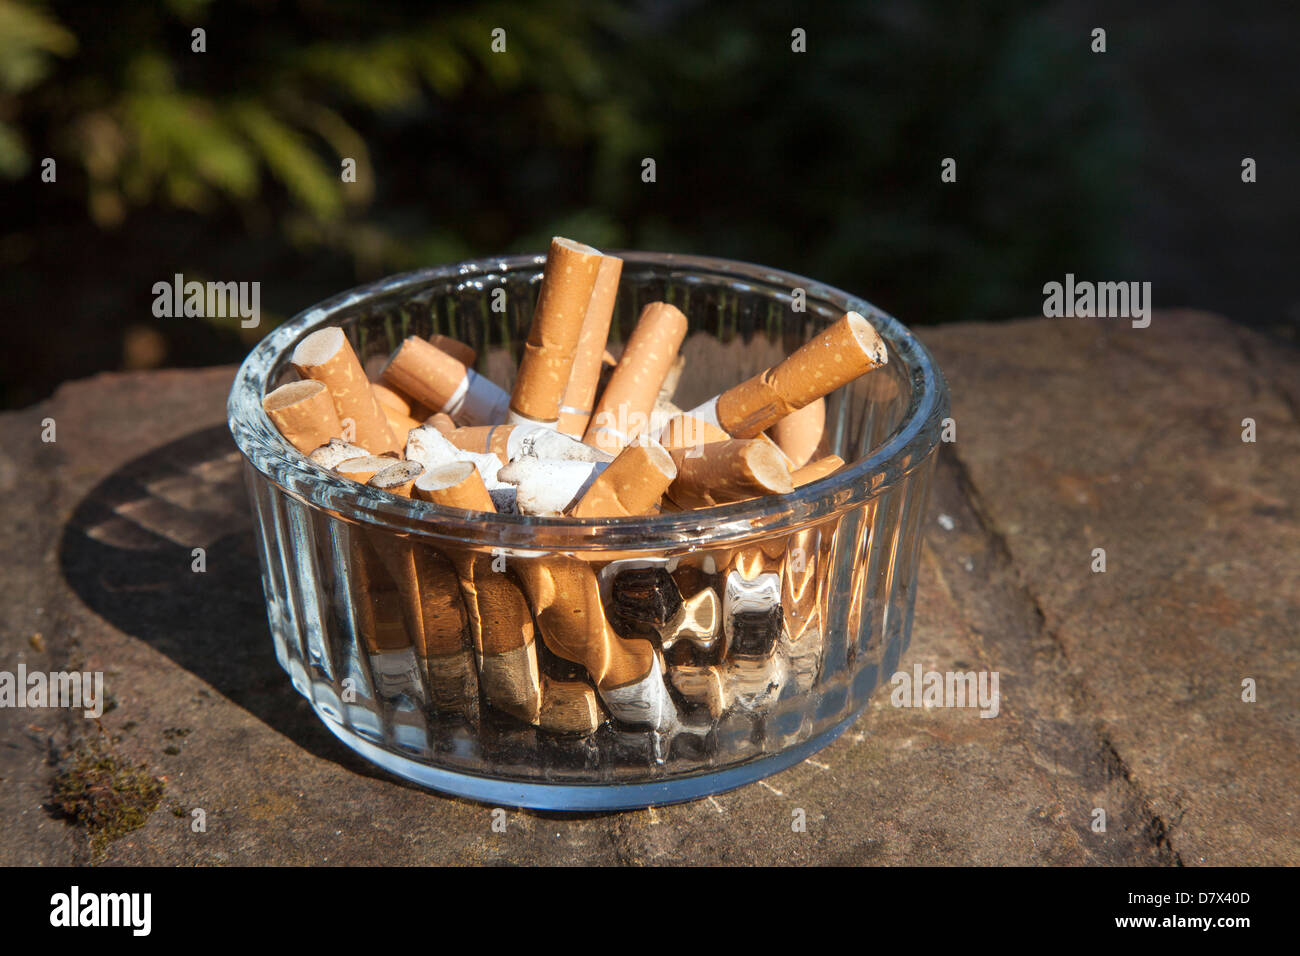 Cigarette Butts in Ashtray bowl - Stock Image